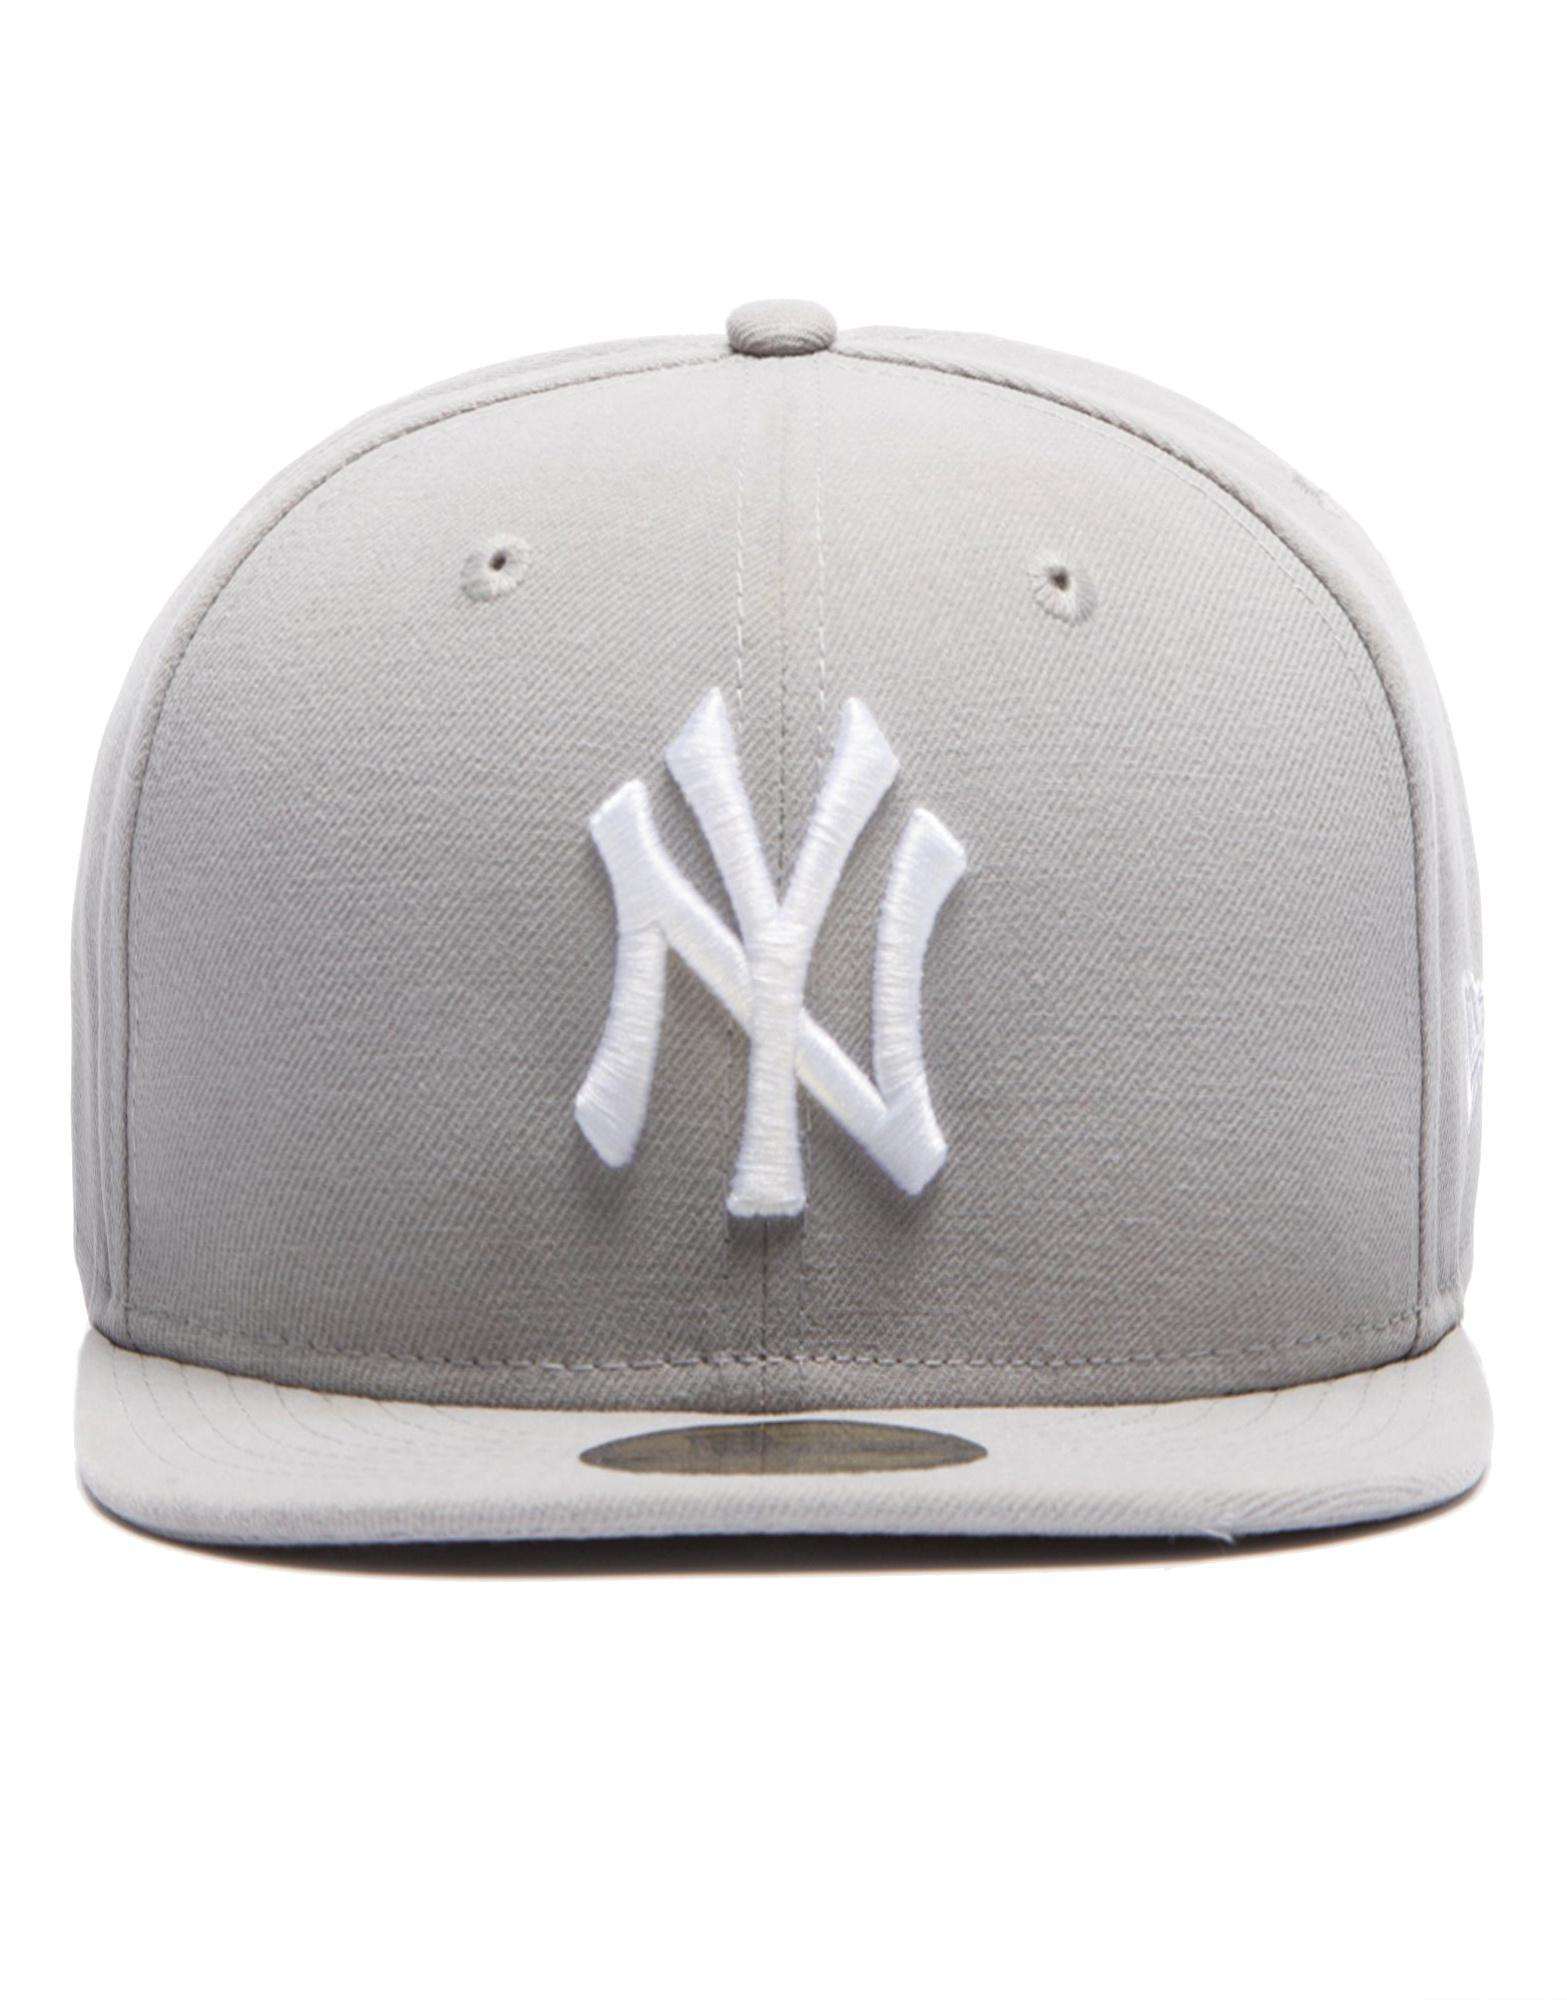 523e561e114 Lyst - Ktz Mlb New York Yankees 59fifty Fitted Cap in Gray for Men